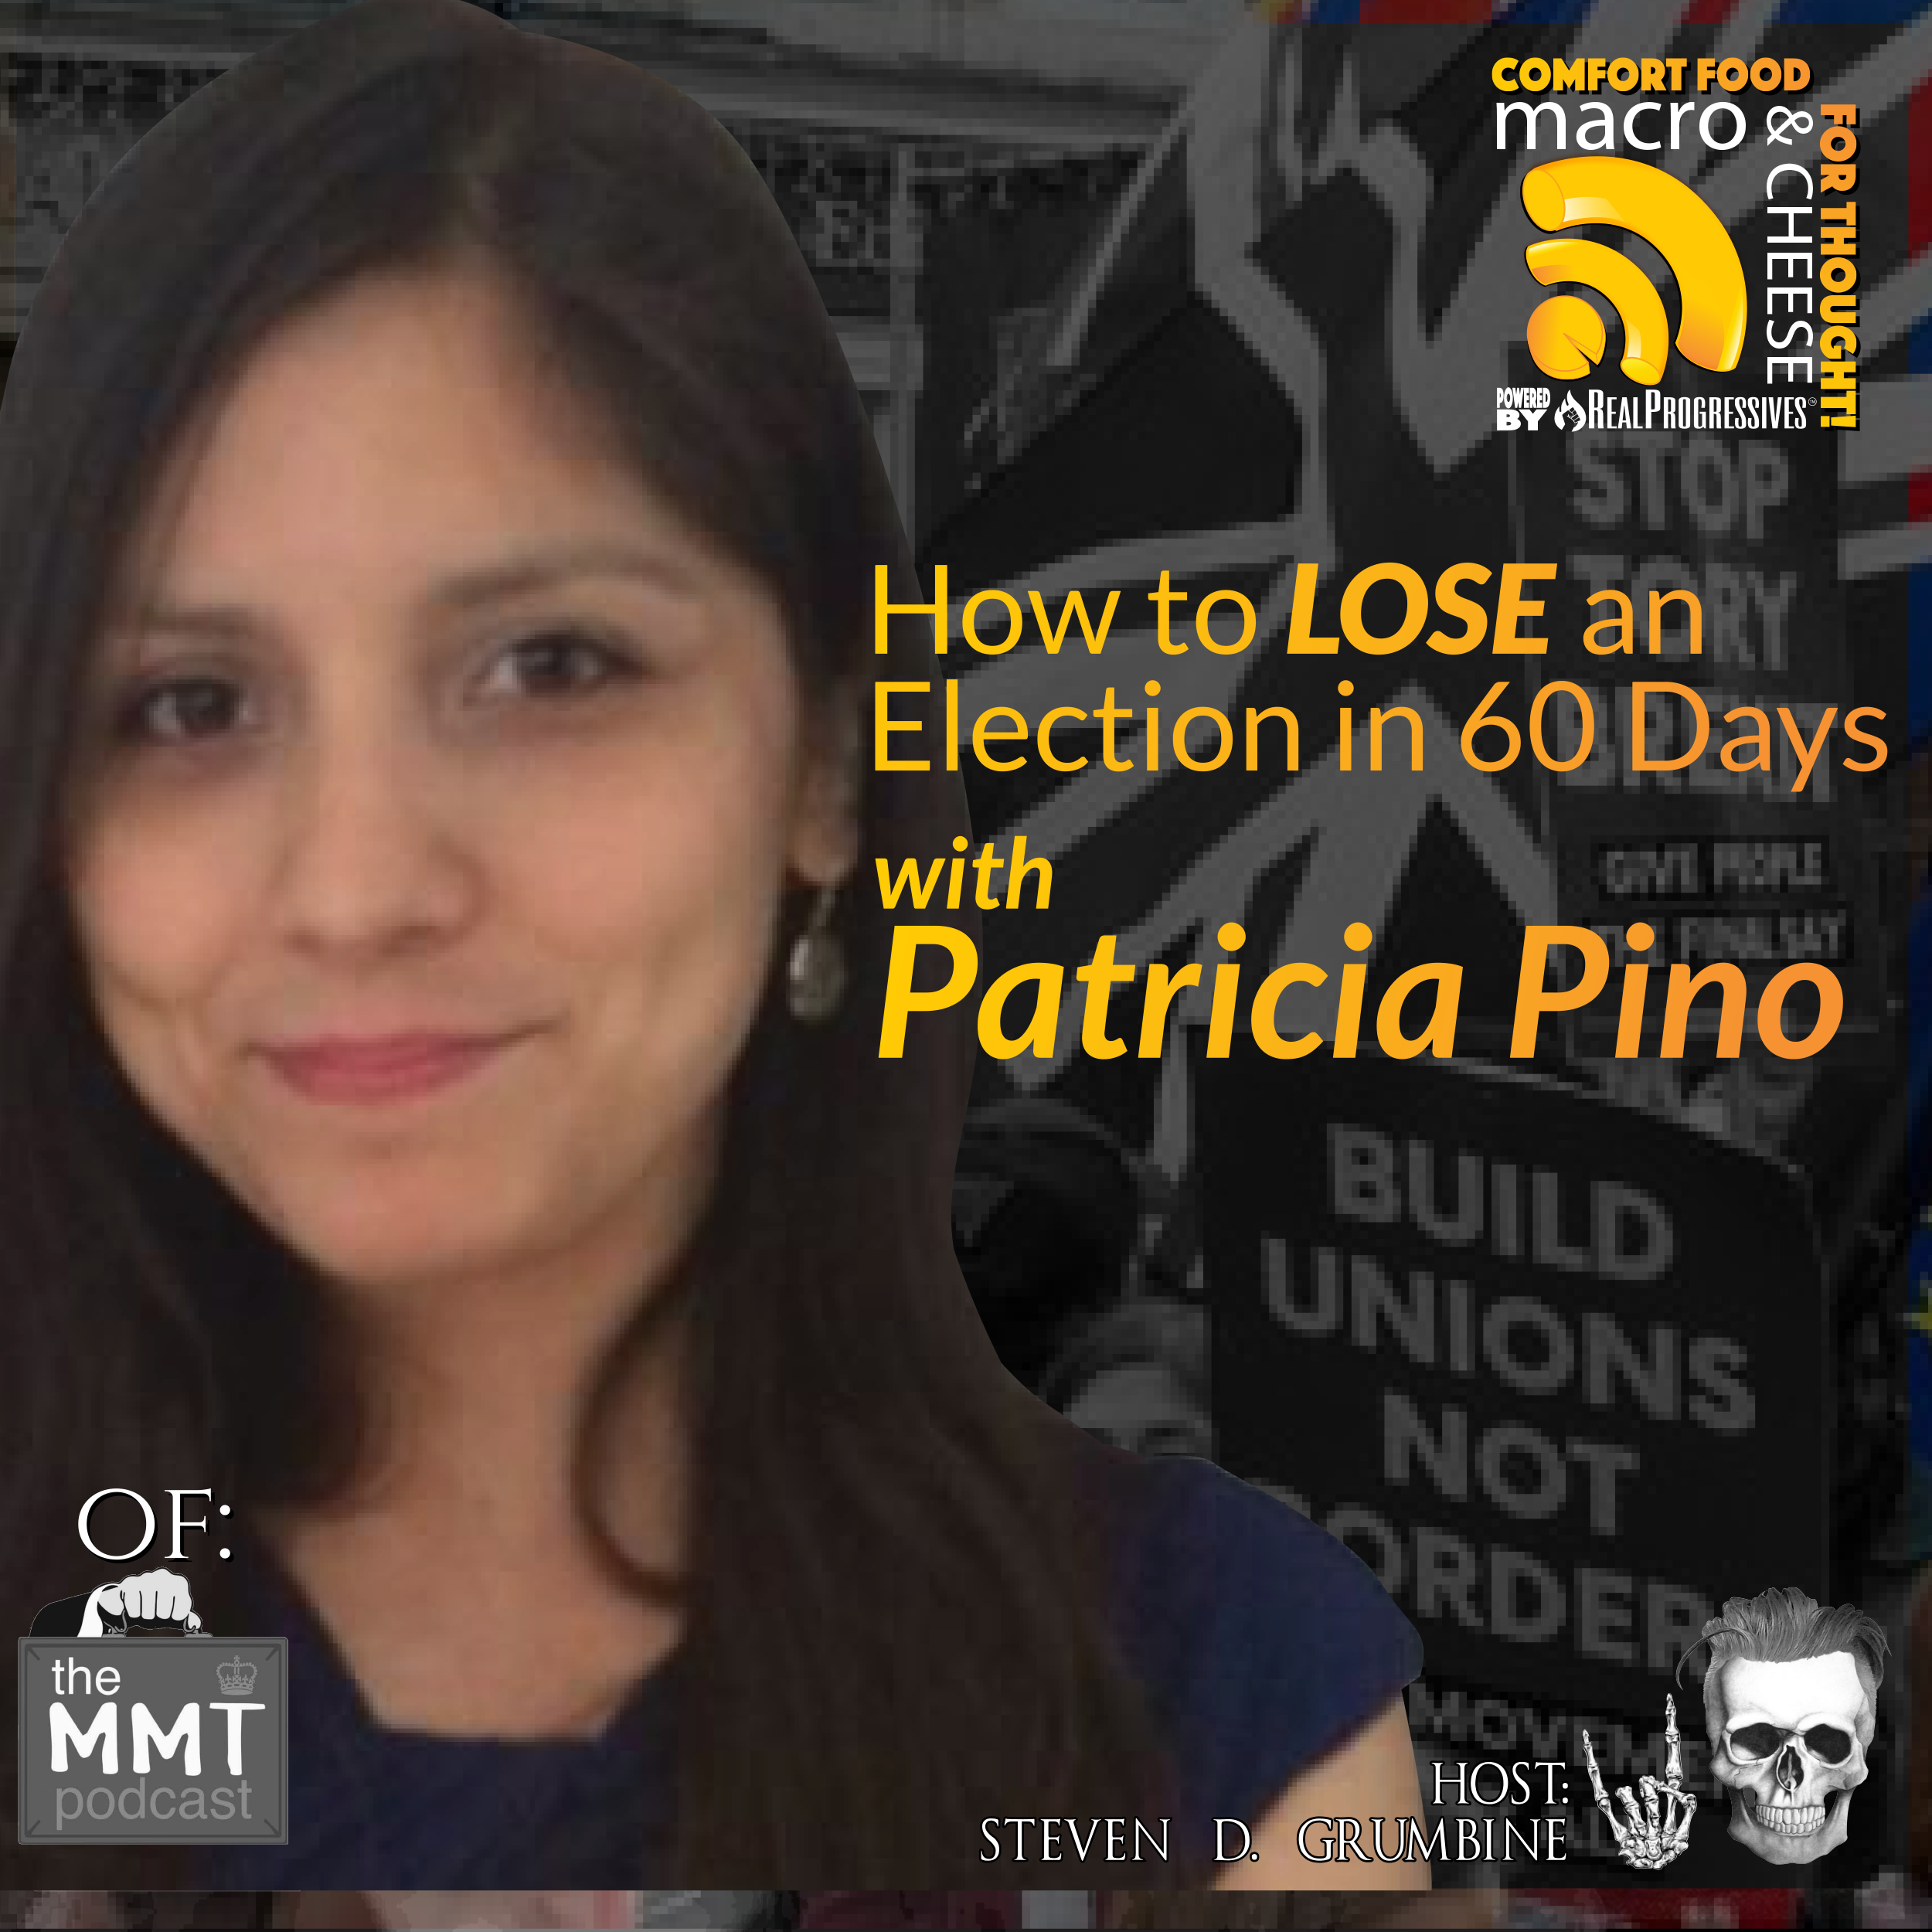 How to Lose an Election in 60 Days with Patricia Pino